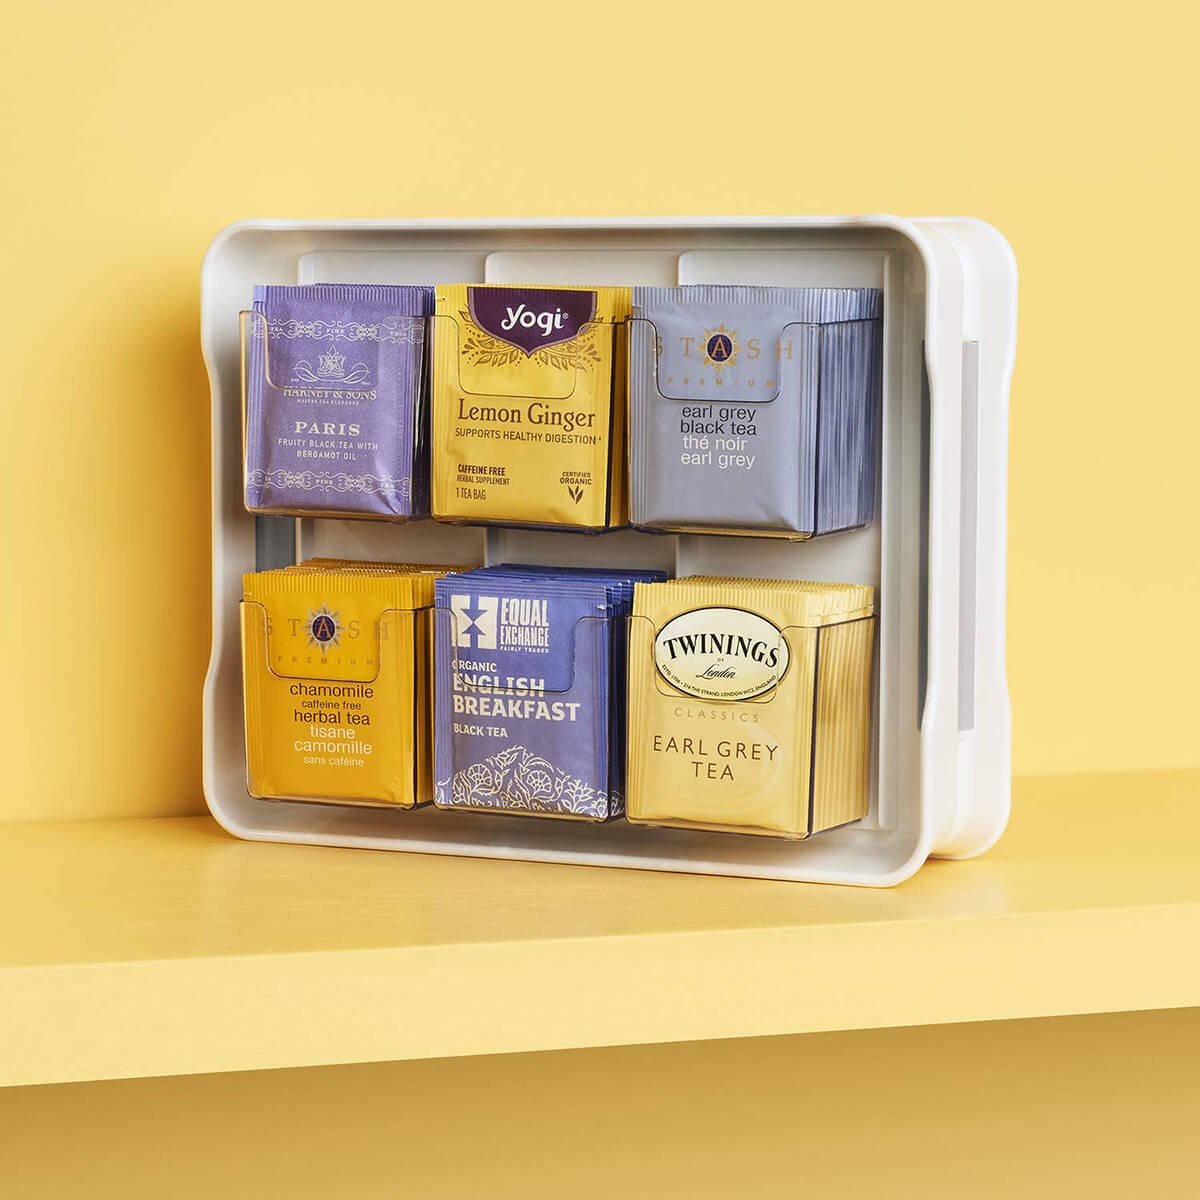 Tea Bag Holder and Display Case